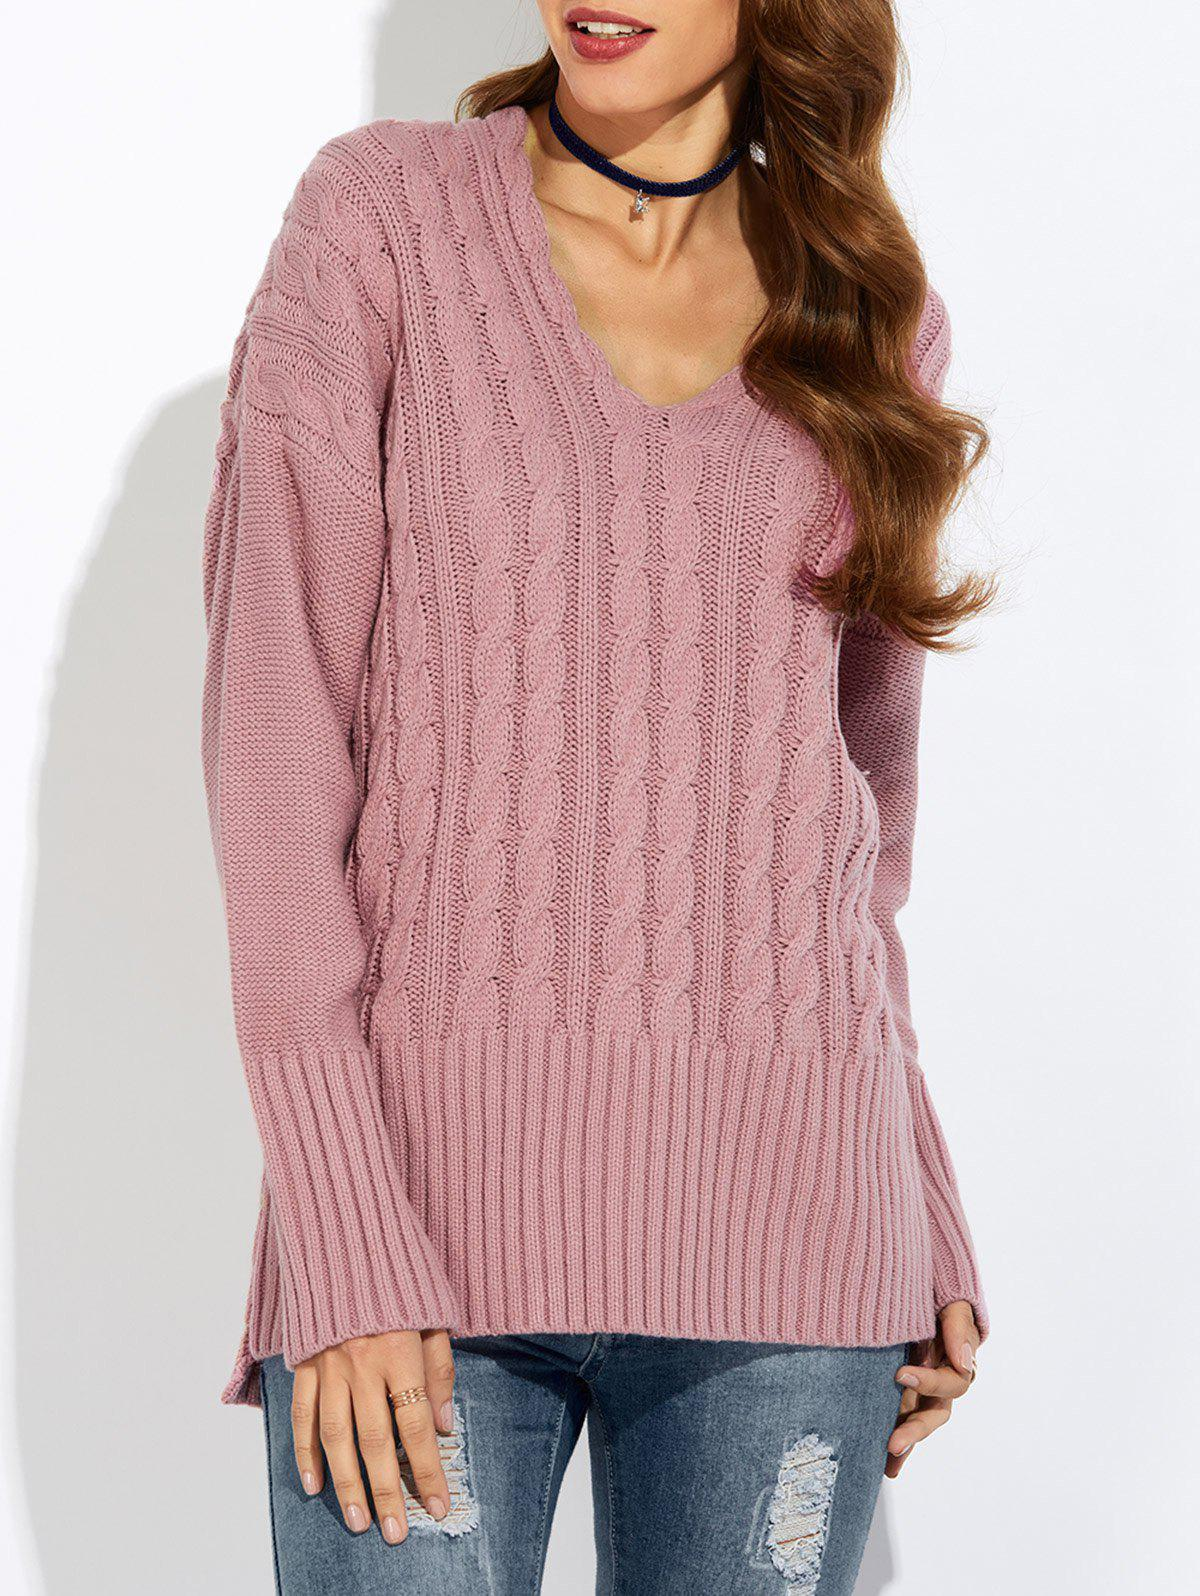 9e612d71d2 54% OFF  V Neck Drop Shoulder Pullover Cable Knit Sweater